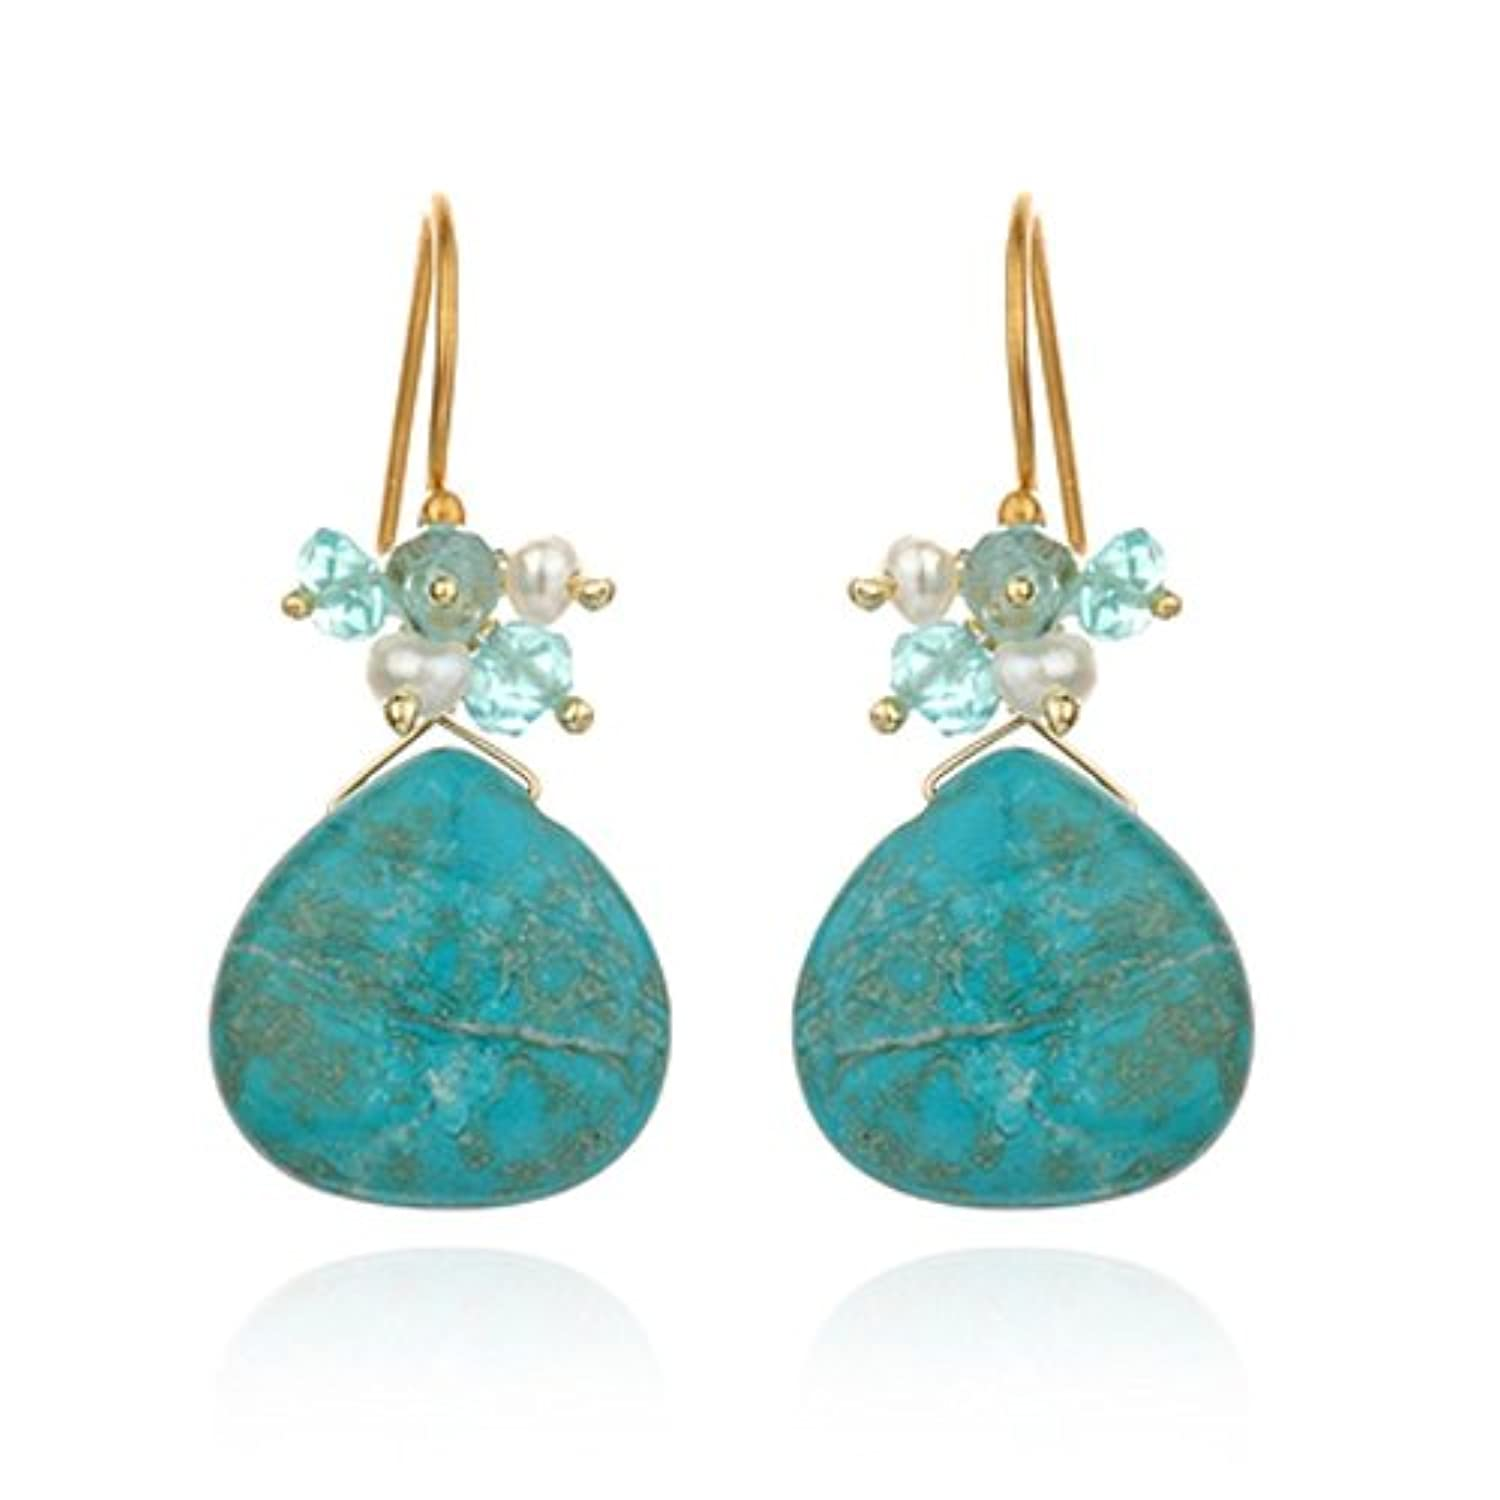 Satya Jewelry - Captivation Earring with Turquoise Drop Multi Stone Accent from endless.com